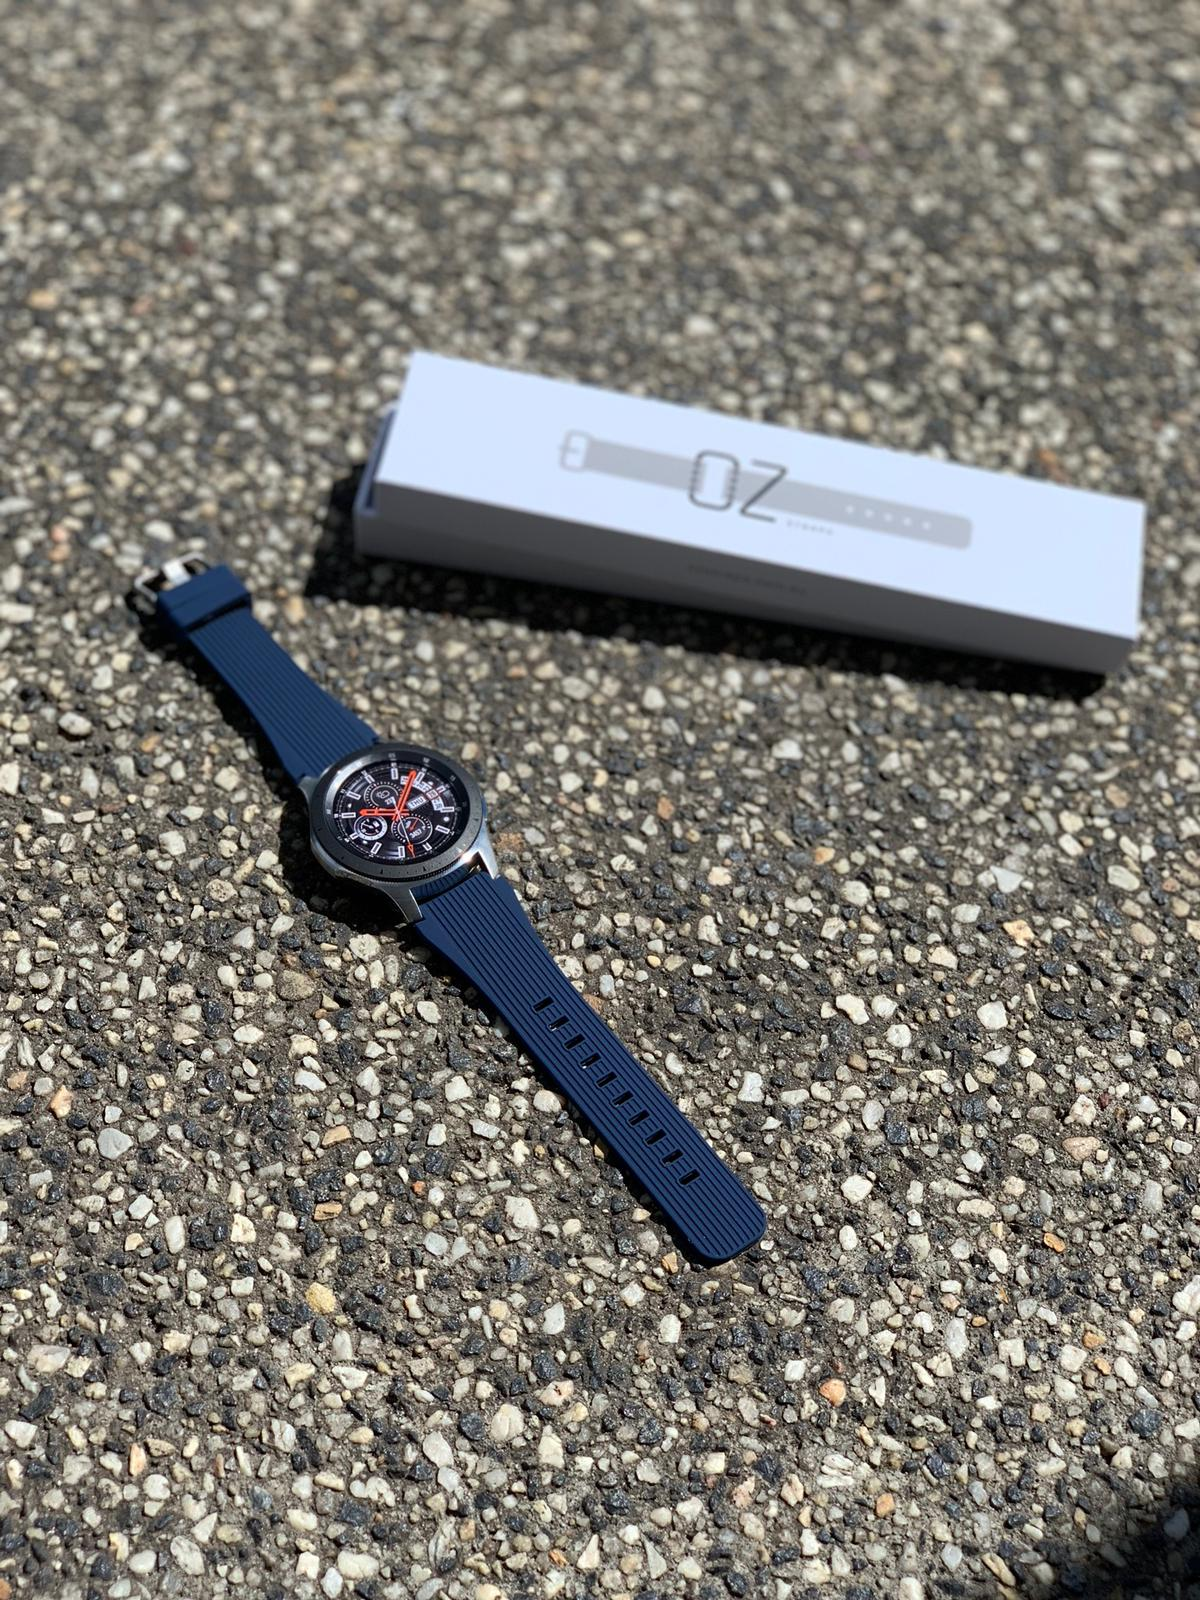 Samsung Galaxy Watch Bands Now Available @ OzStraps NZ